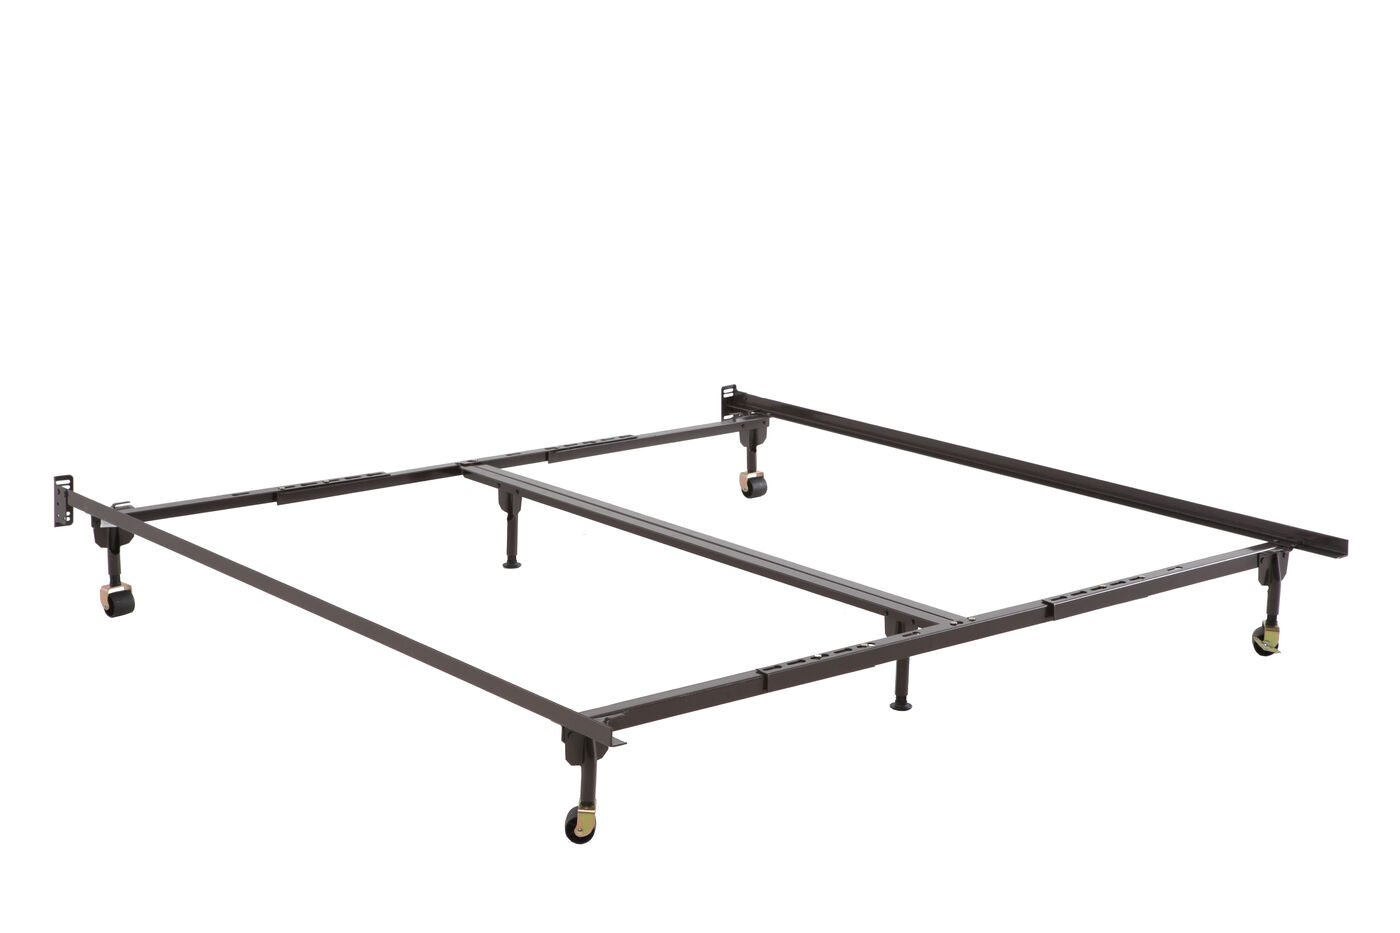 glideaway queenking bed frame with six legs - Glideaway Bed Frames